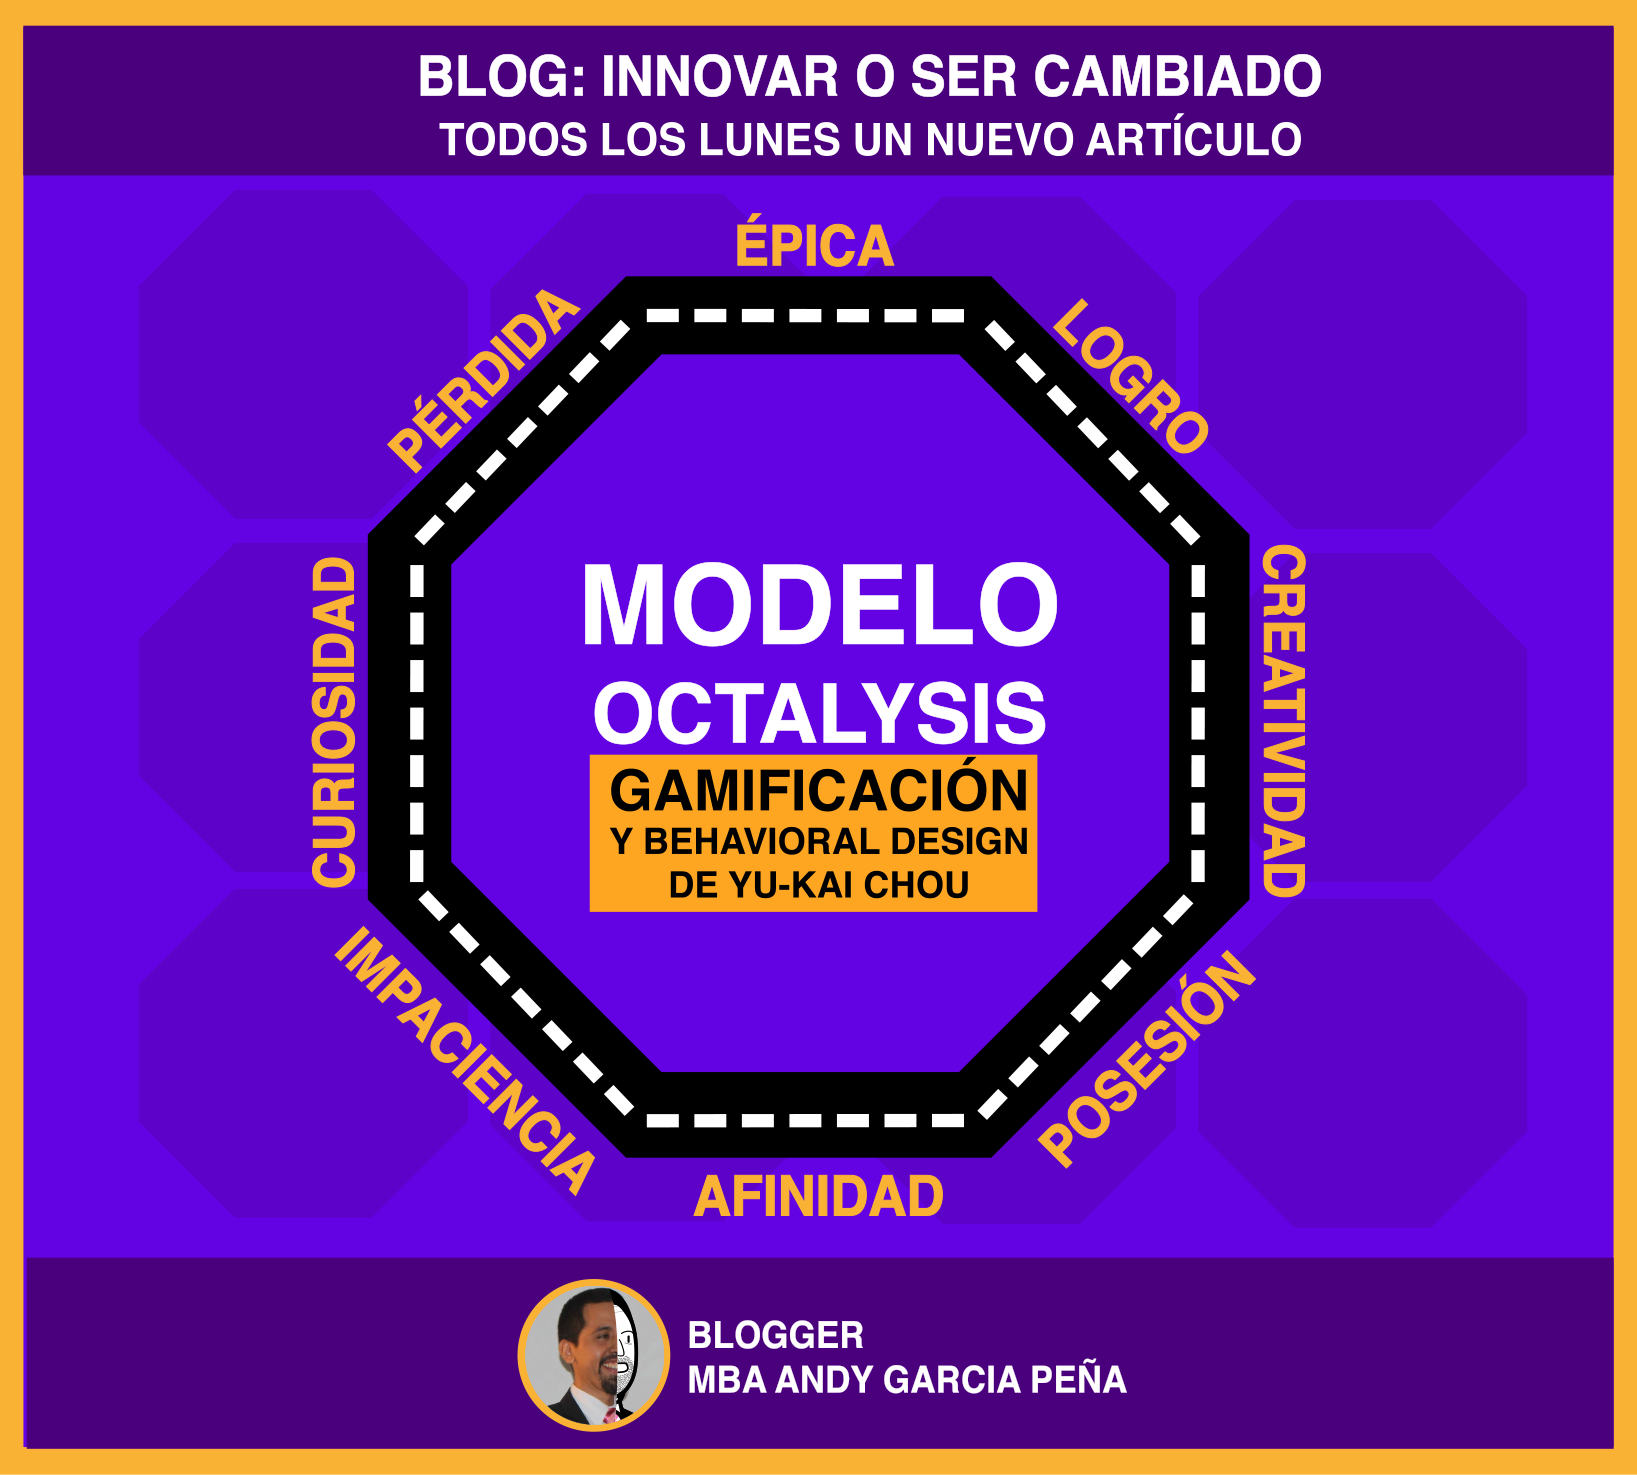 Gamificación: Octalysis & Behavioral Design